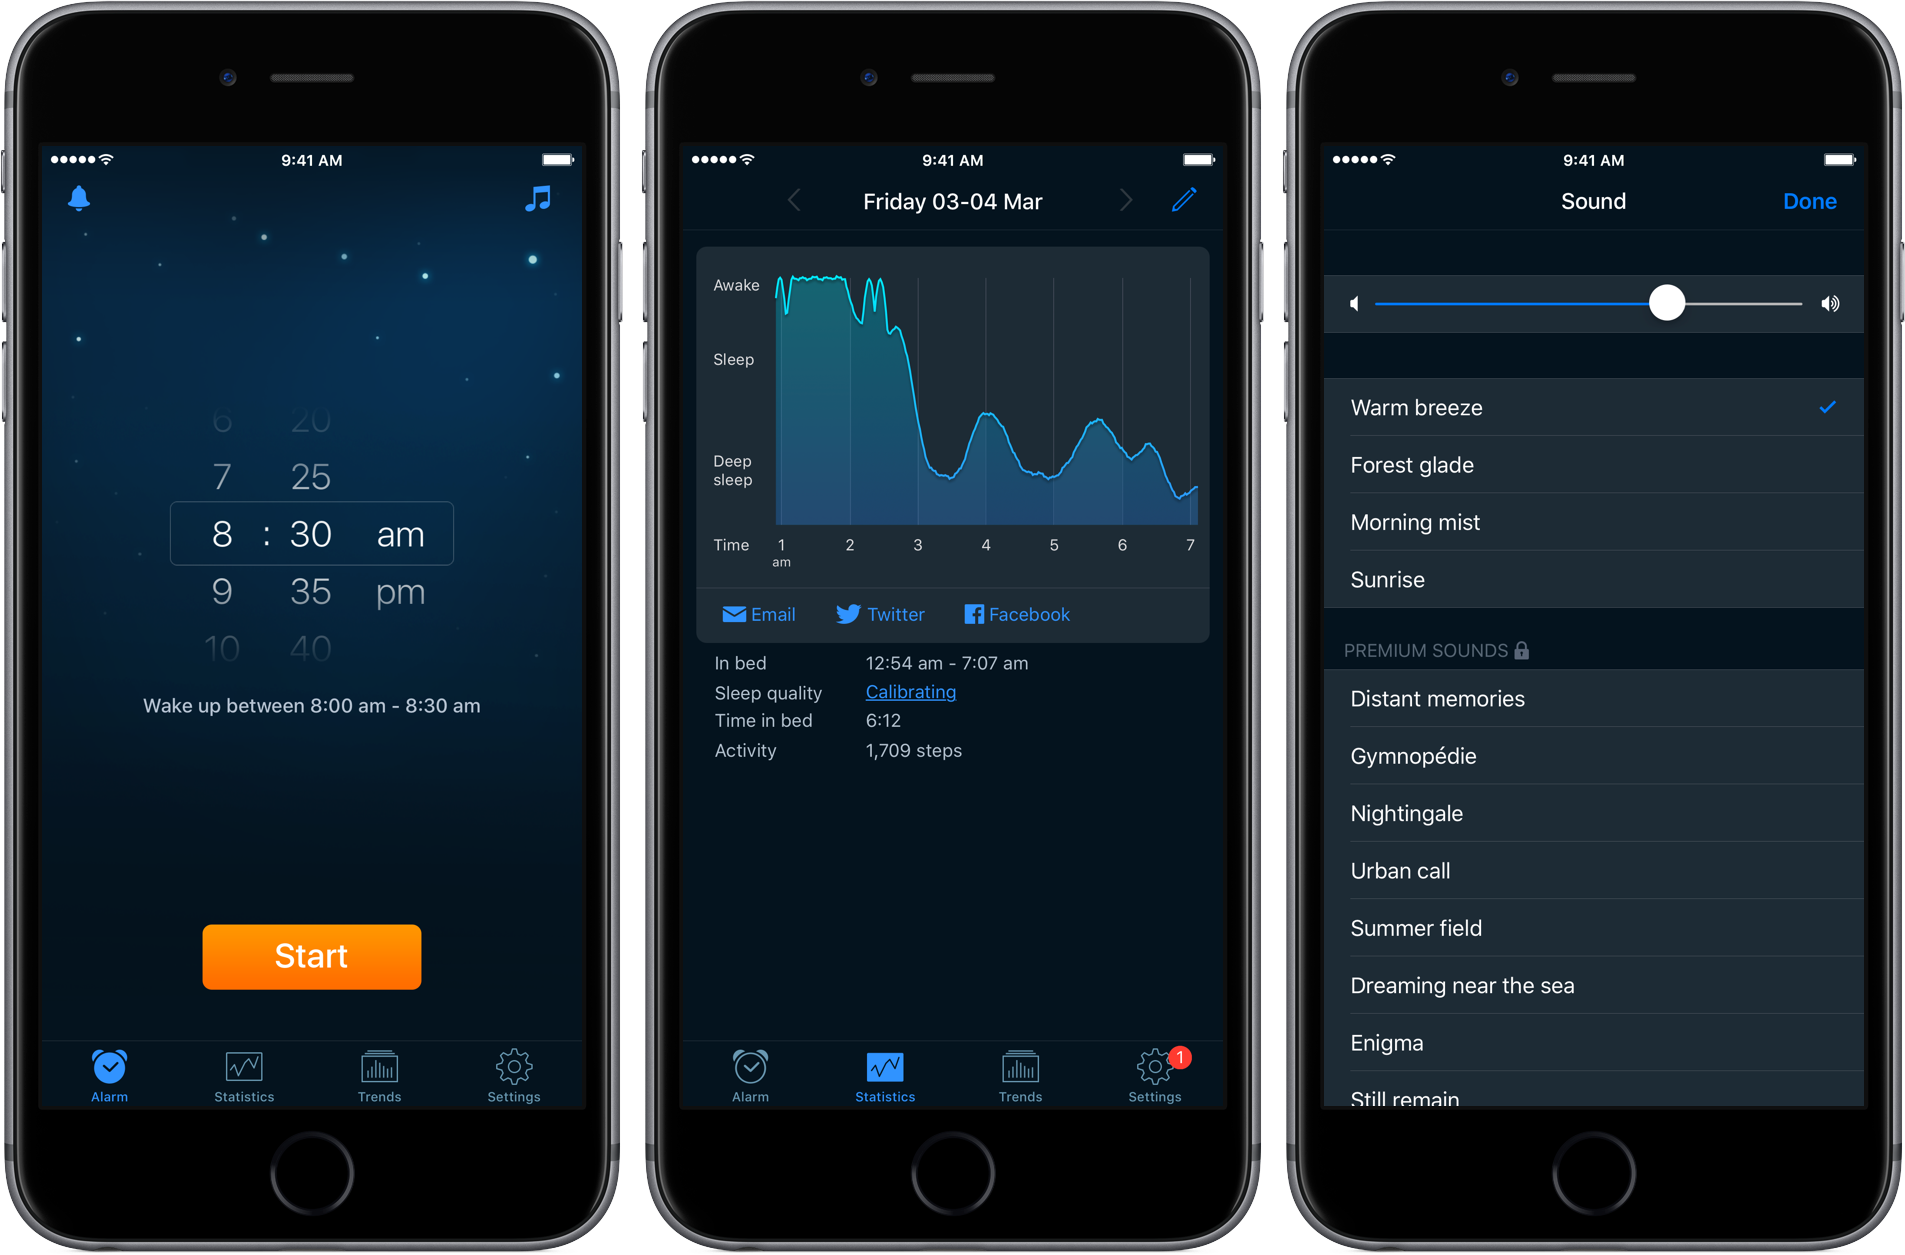 Sleep cycle for Iphone